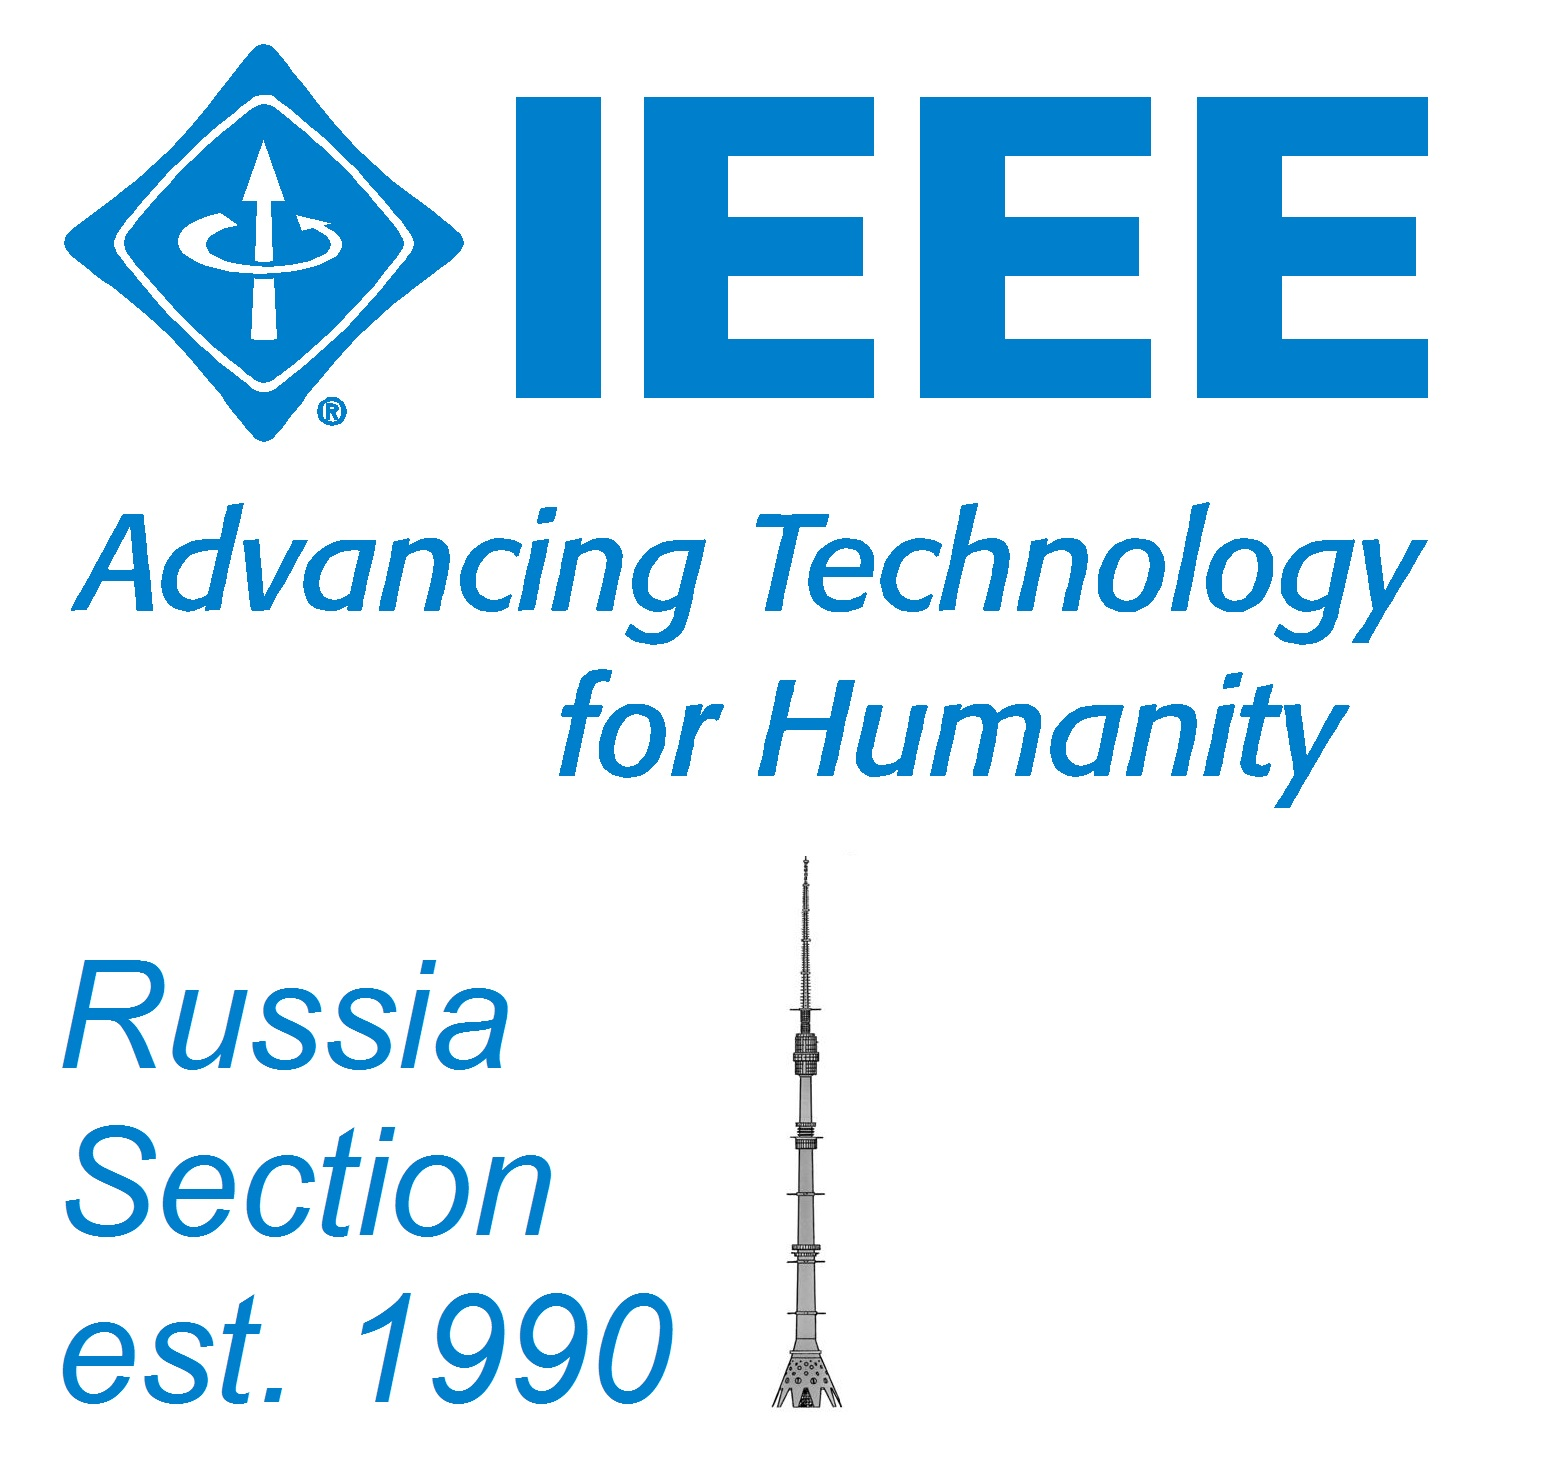 ieee RS logo blue